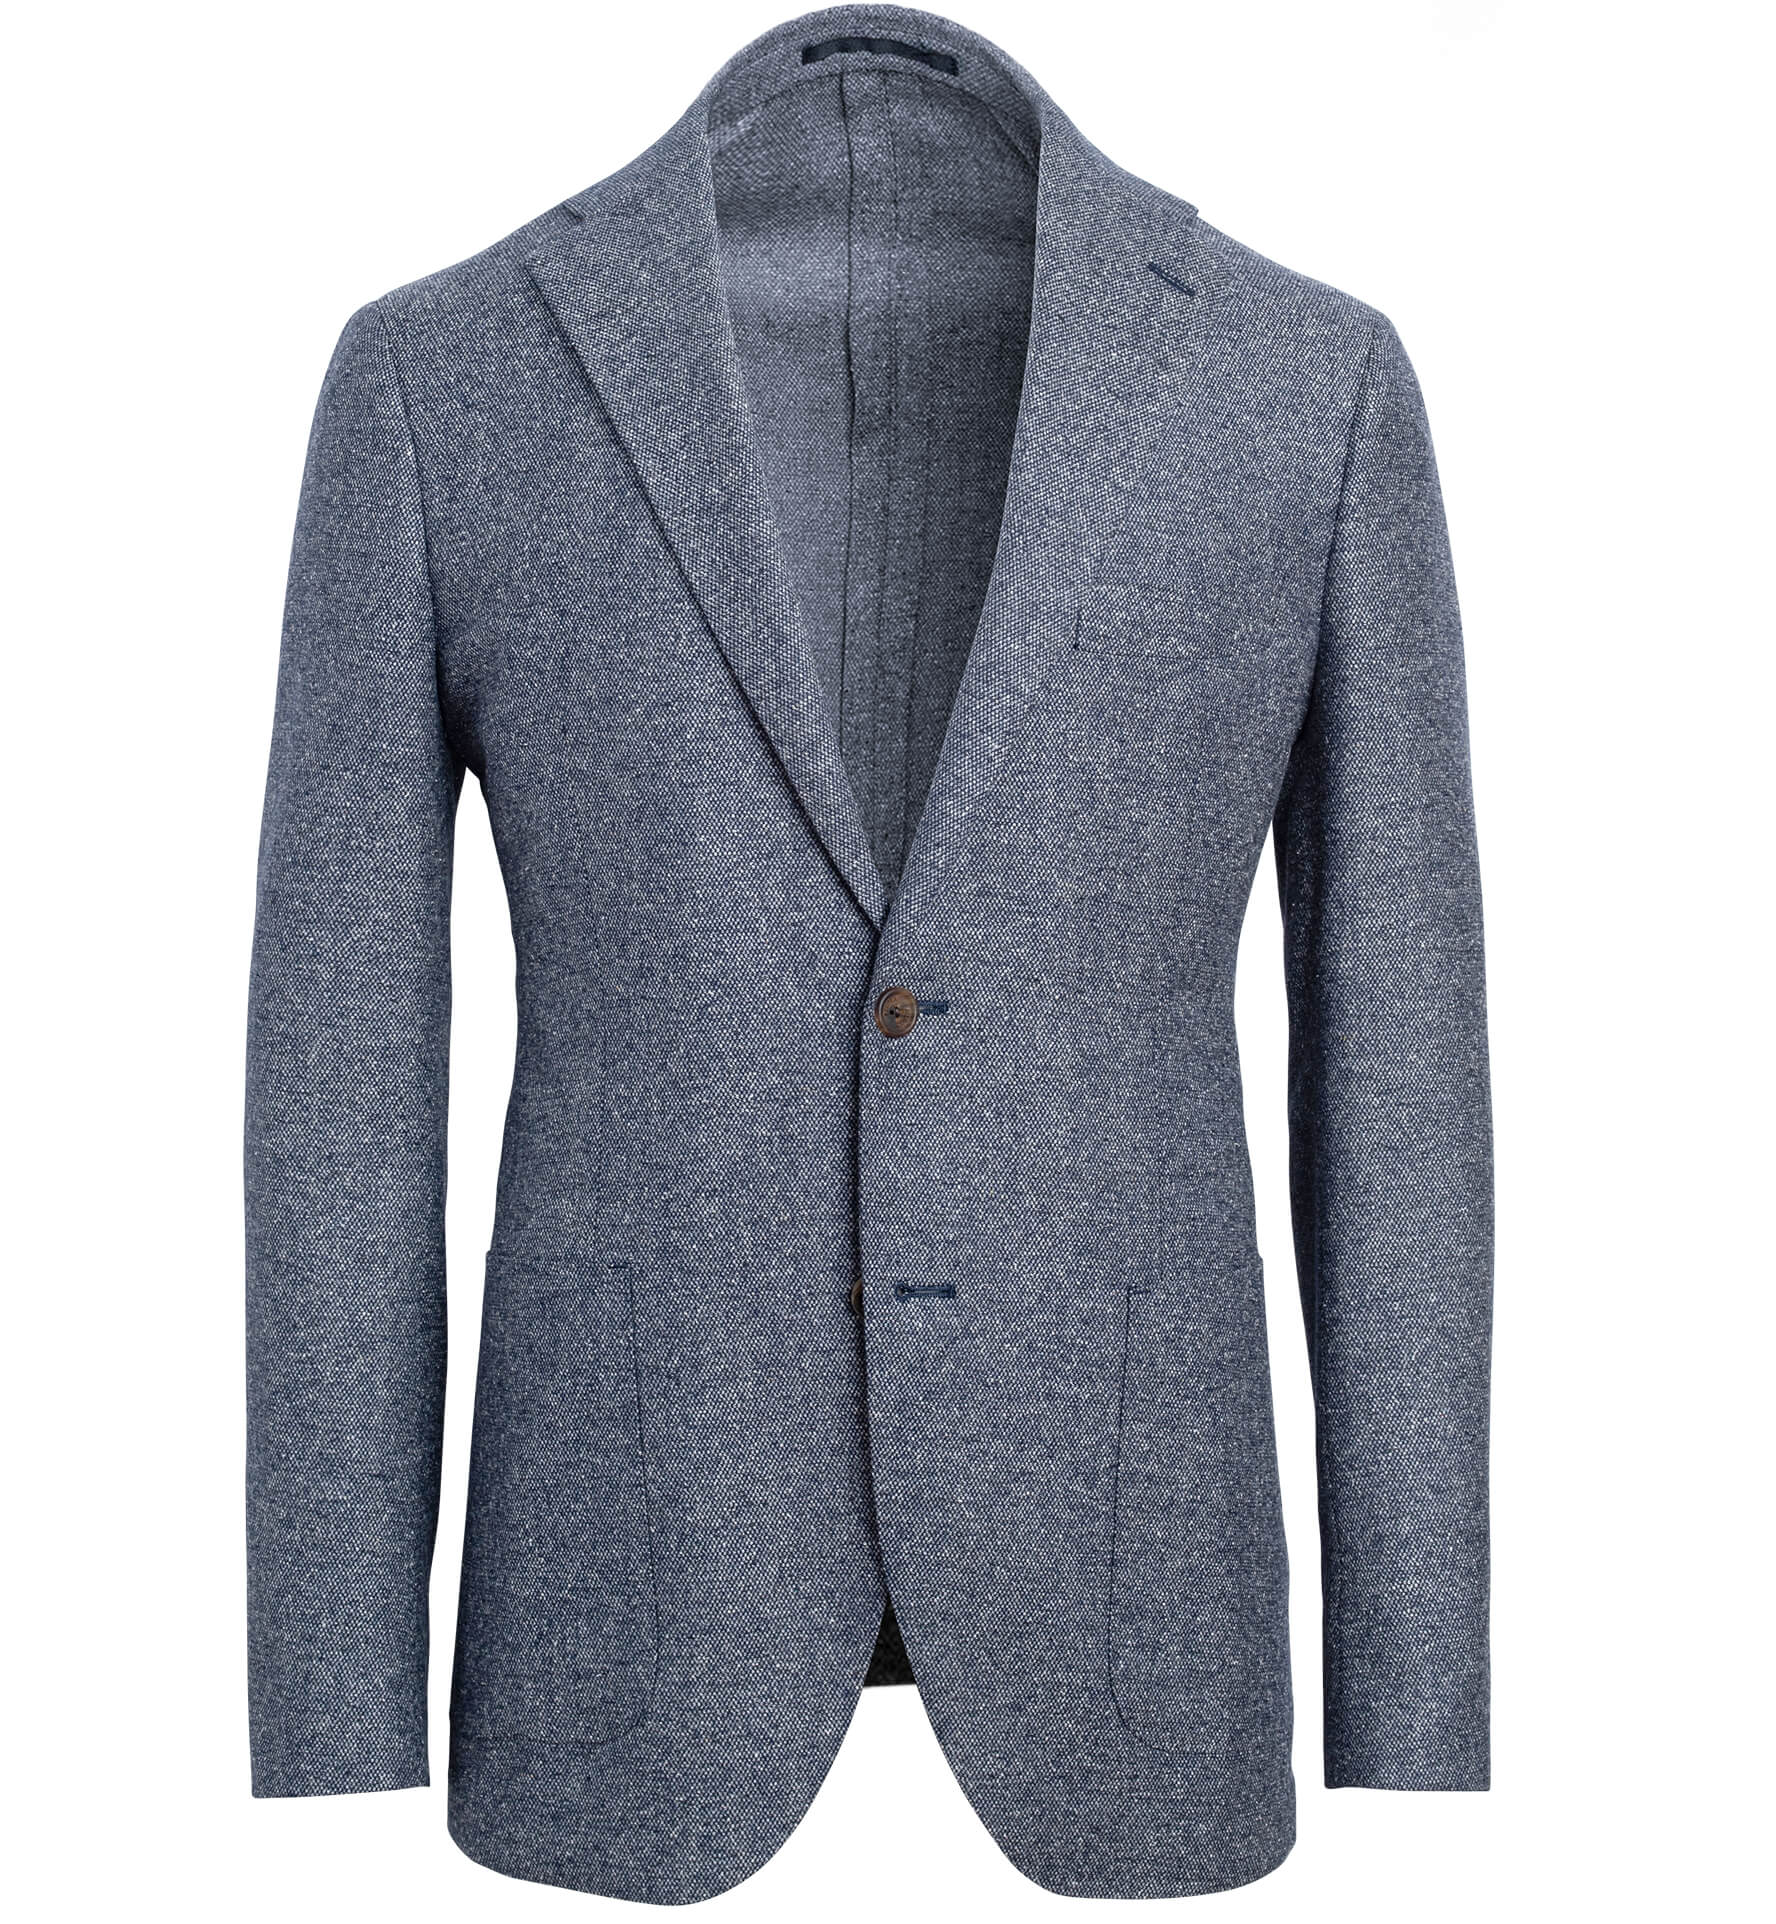 Zoom Image of Bedford Glacier Blue Wool and Silk Basketweave Jacket